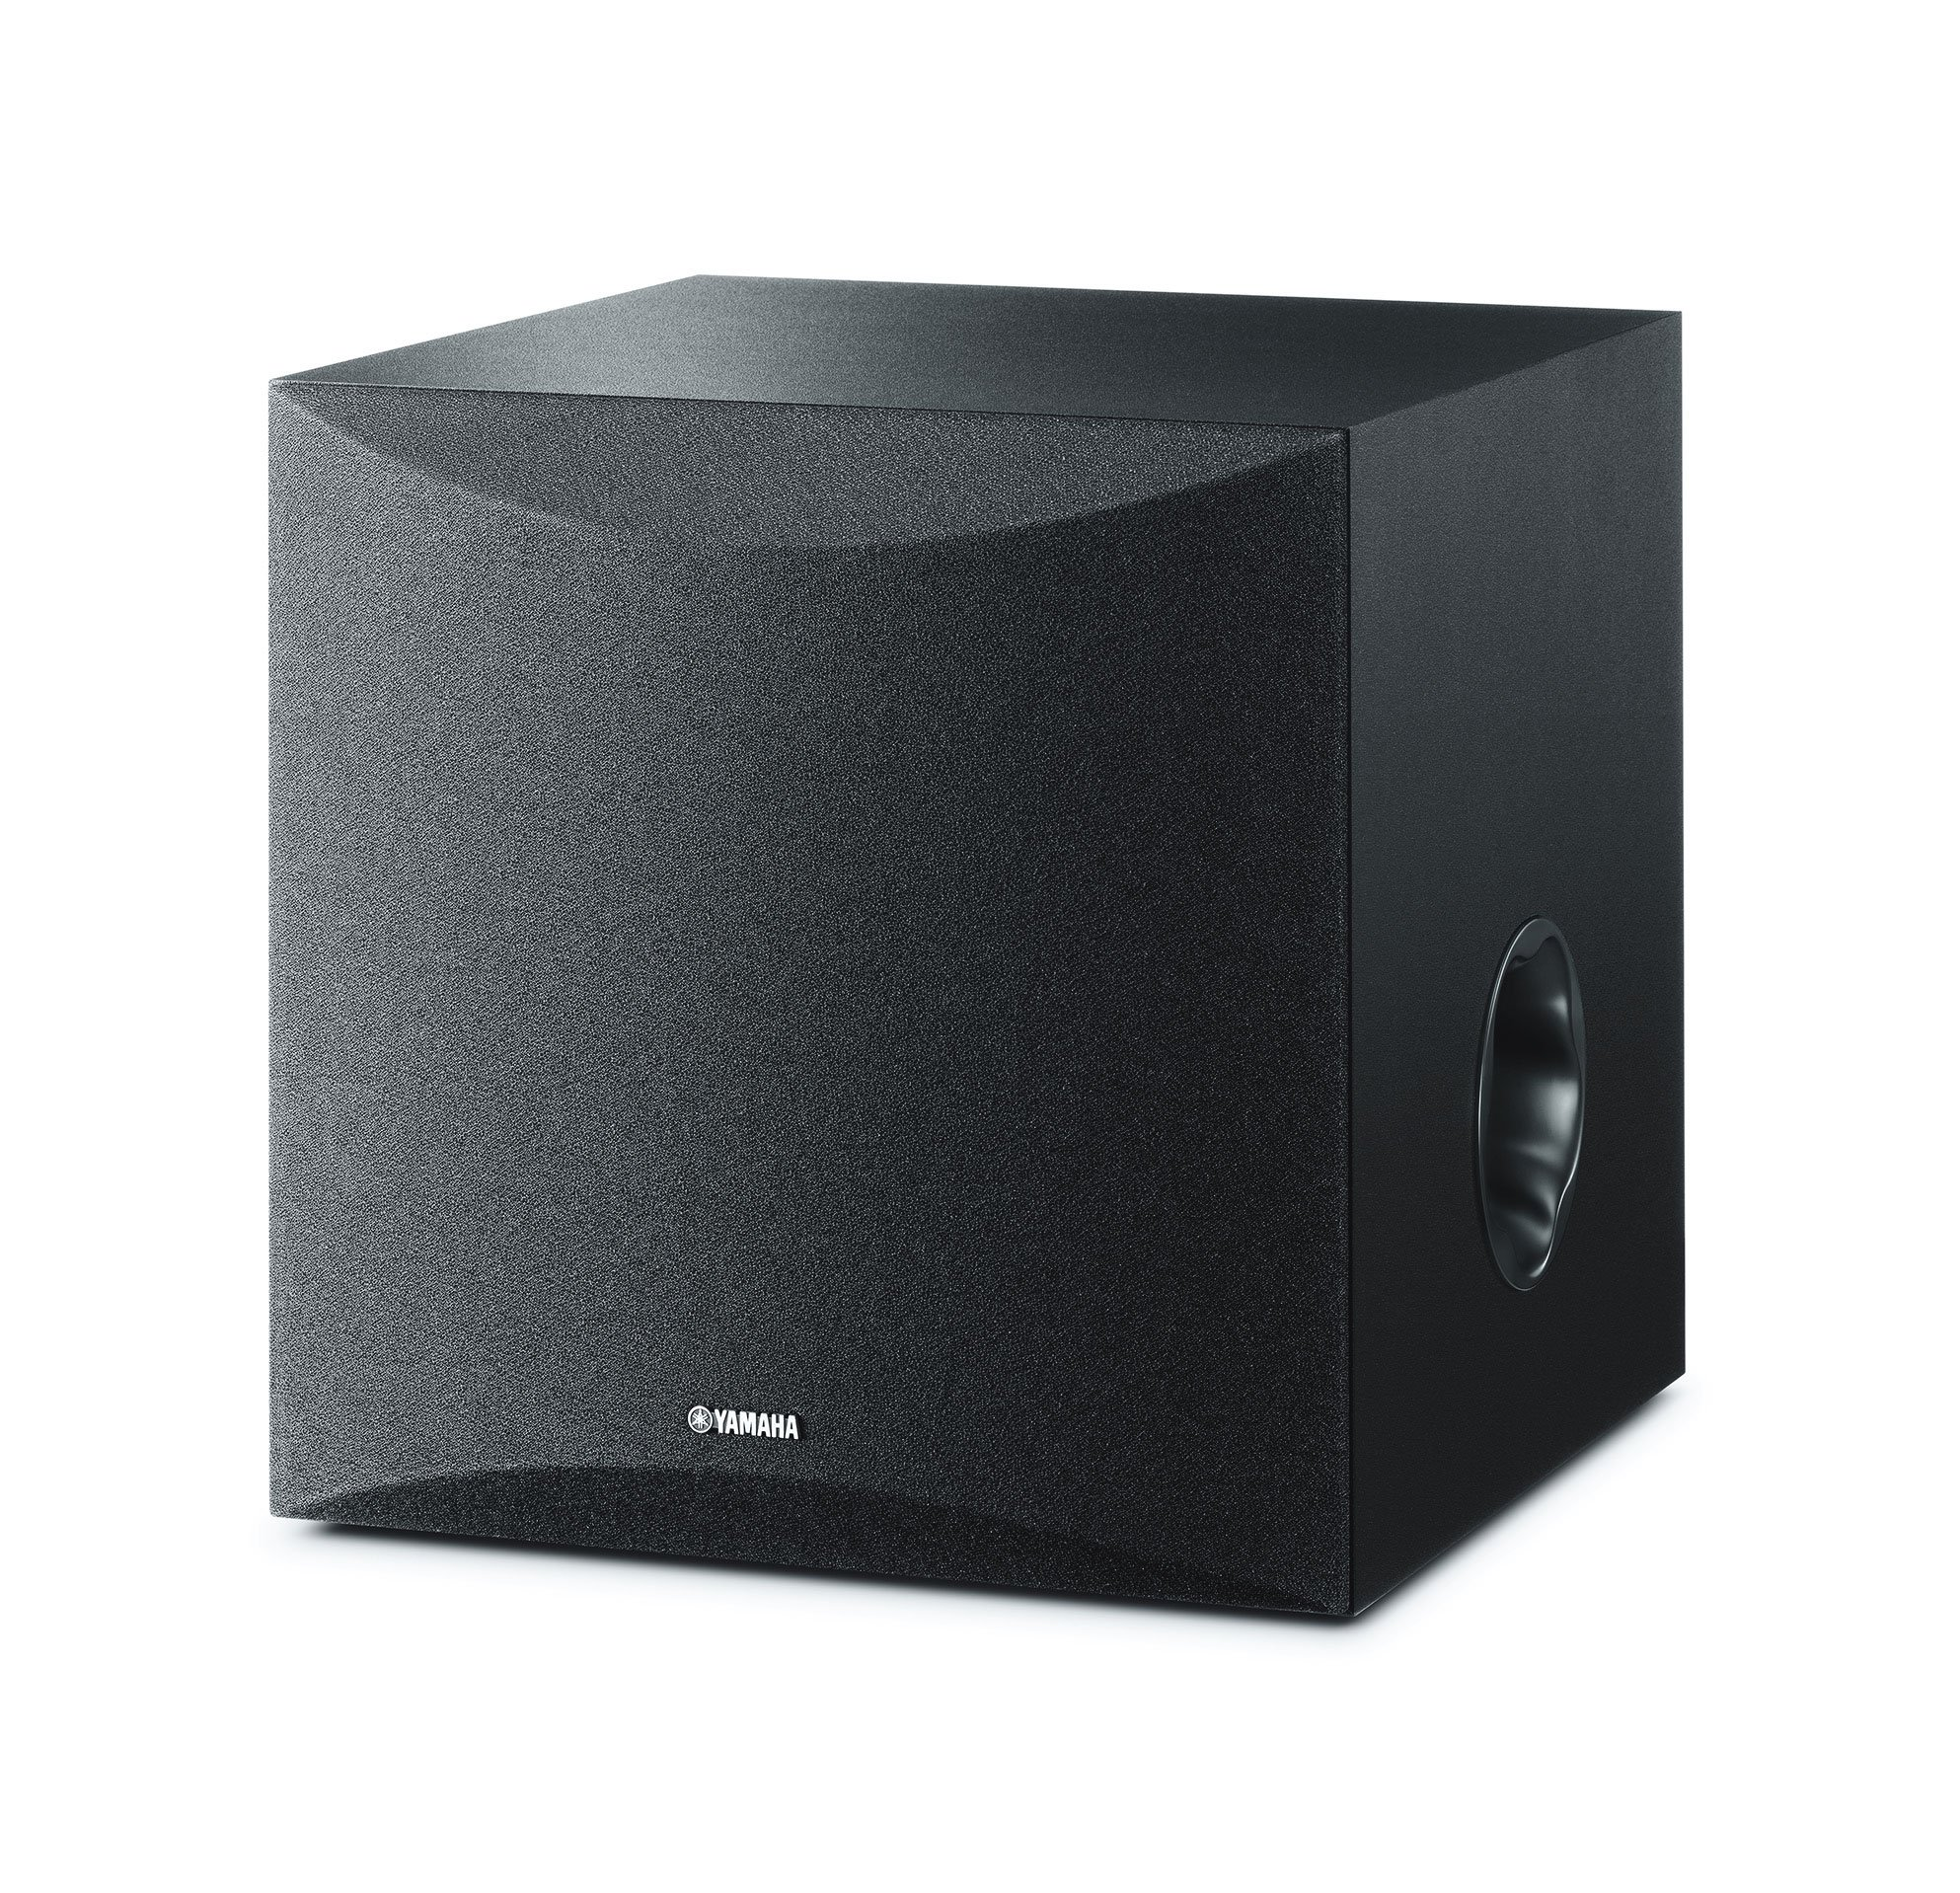 Yamaha NSSW050 Powered Subwoofer with 8 Driver – Black